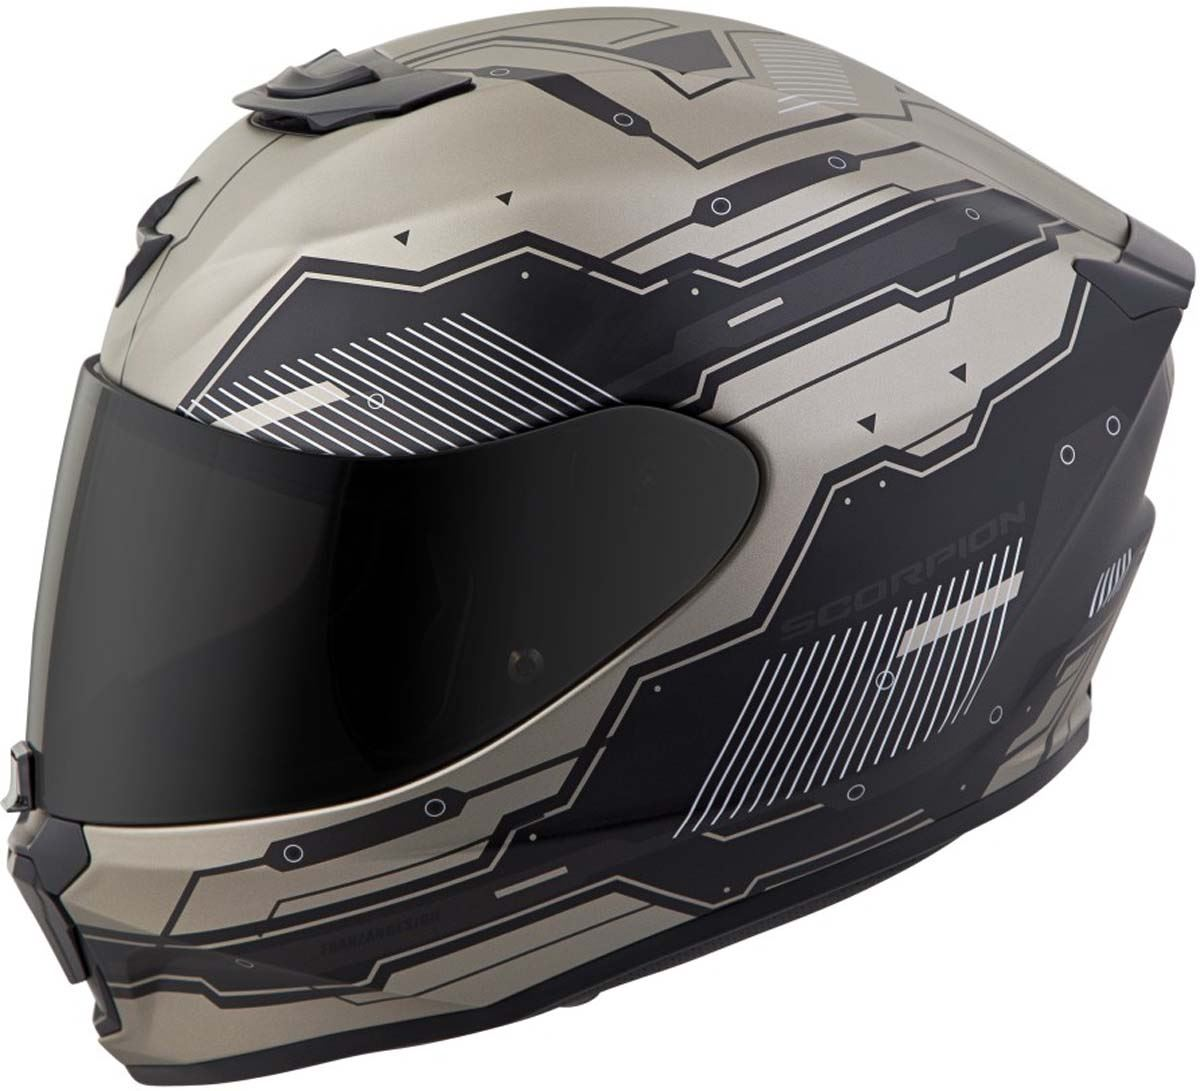 Scorpion-EXO-R420-Helmet-Removable-Liner-Air-Flow-DOT-SNELL-M2015-XS-2XL miniature 28